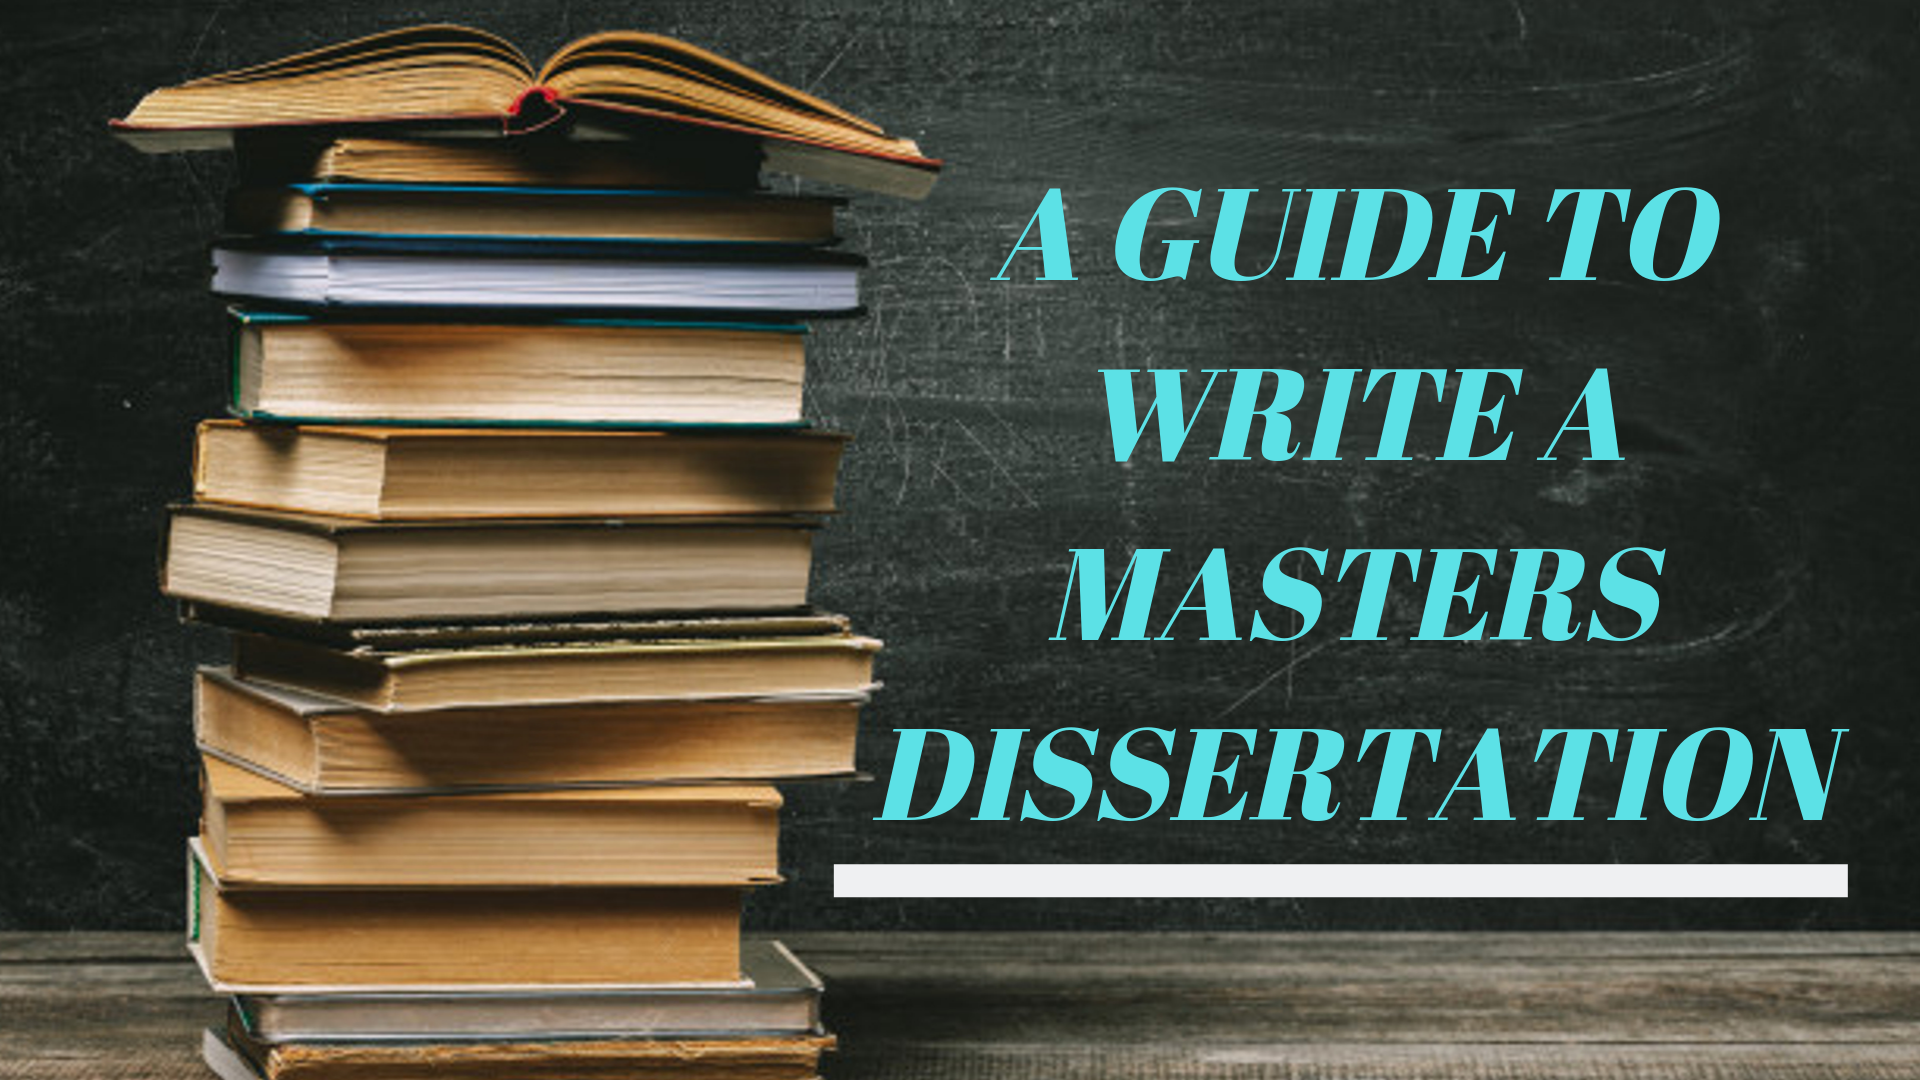 A Guide To Write A Masters Dissertation